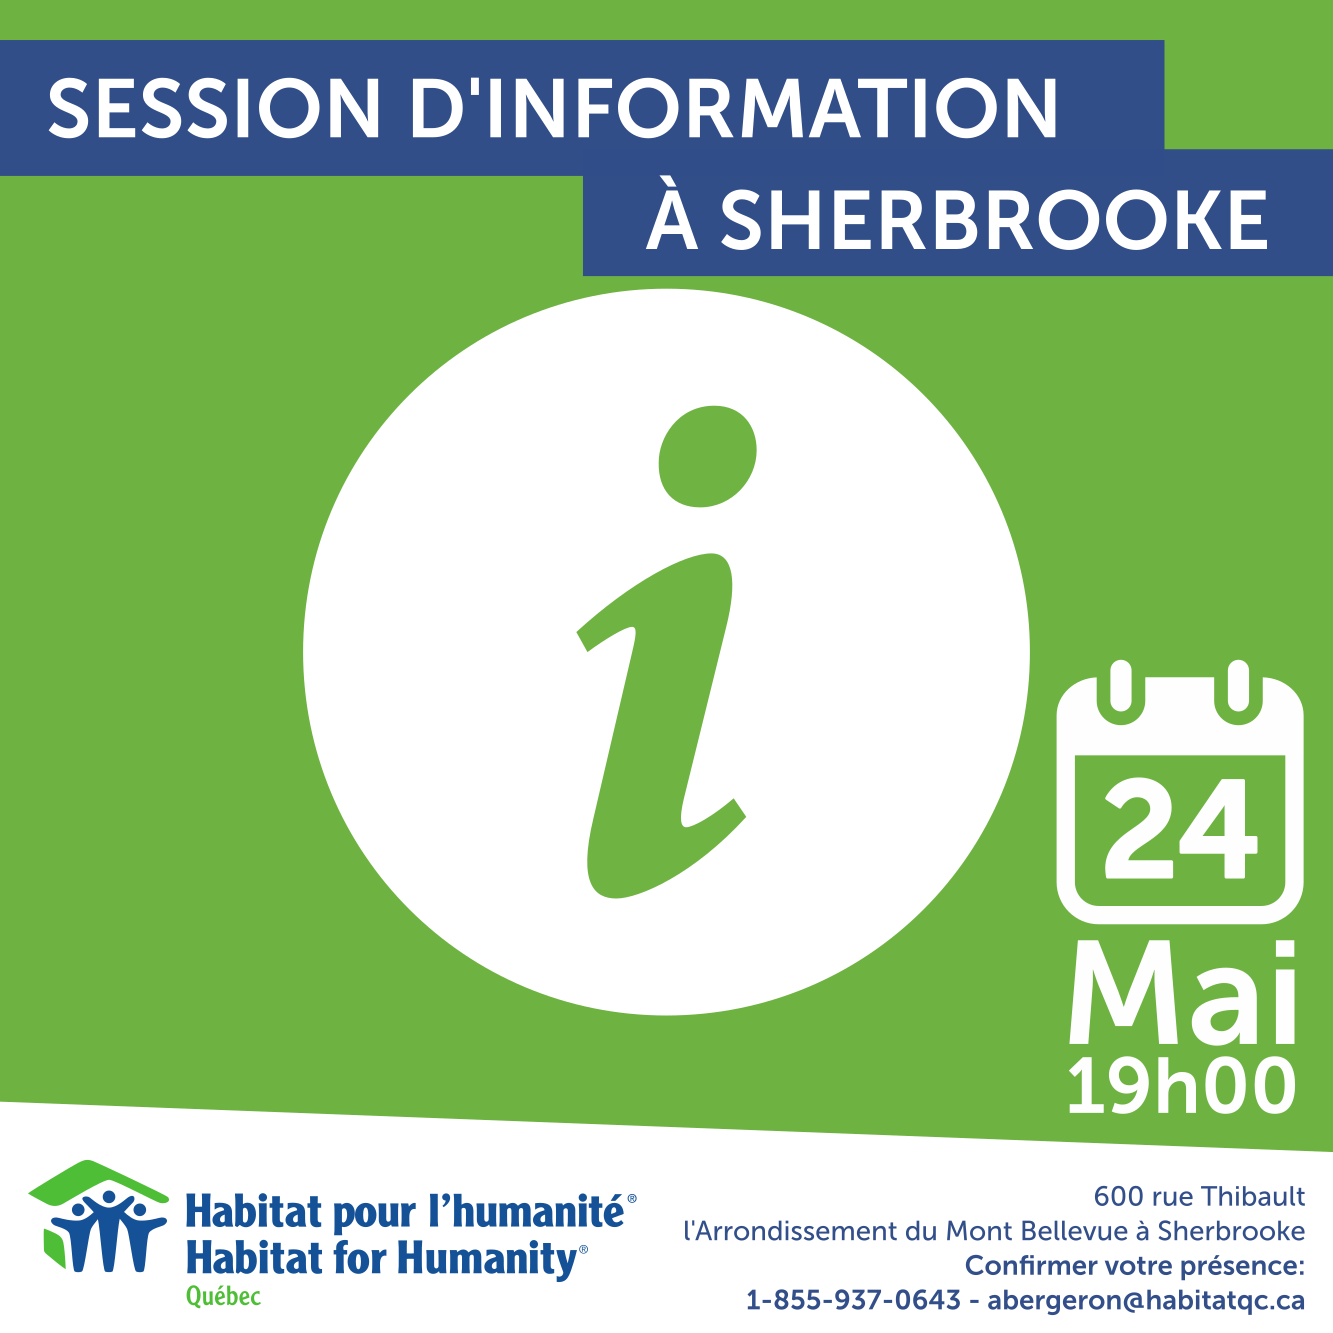 2016 - FB_Session Information Sherbrooke 25 Mai